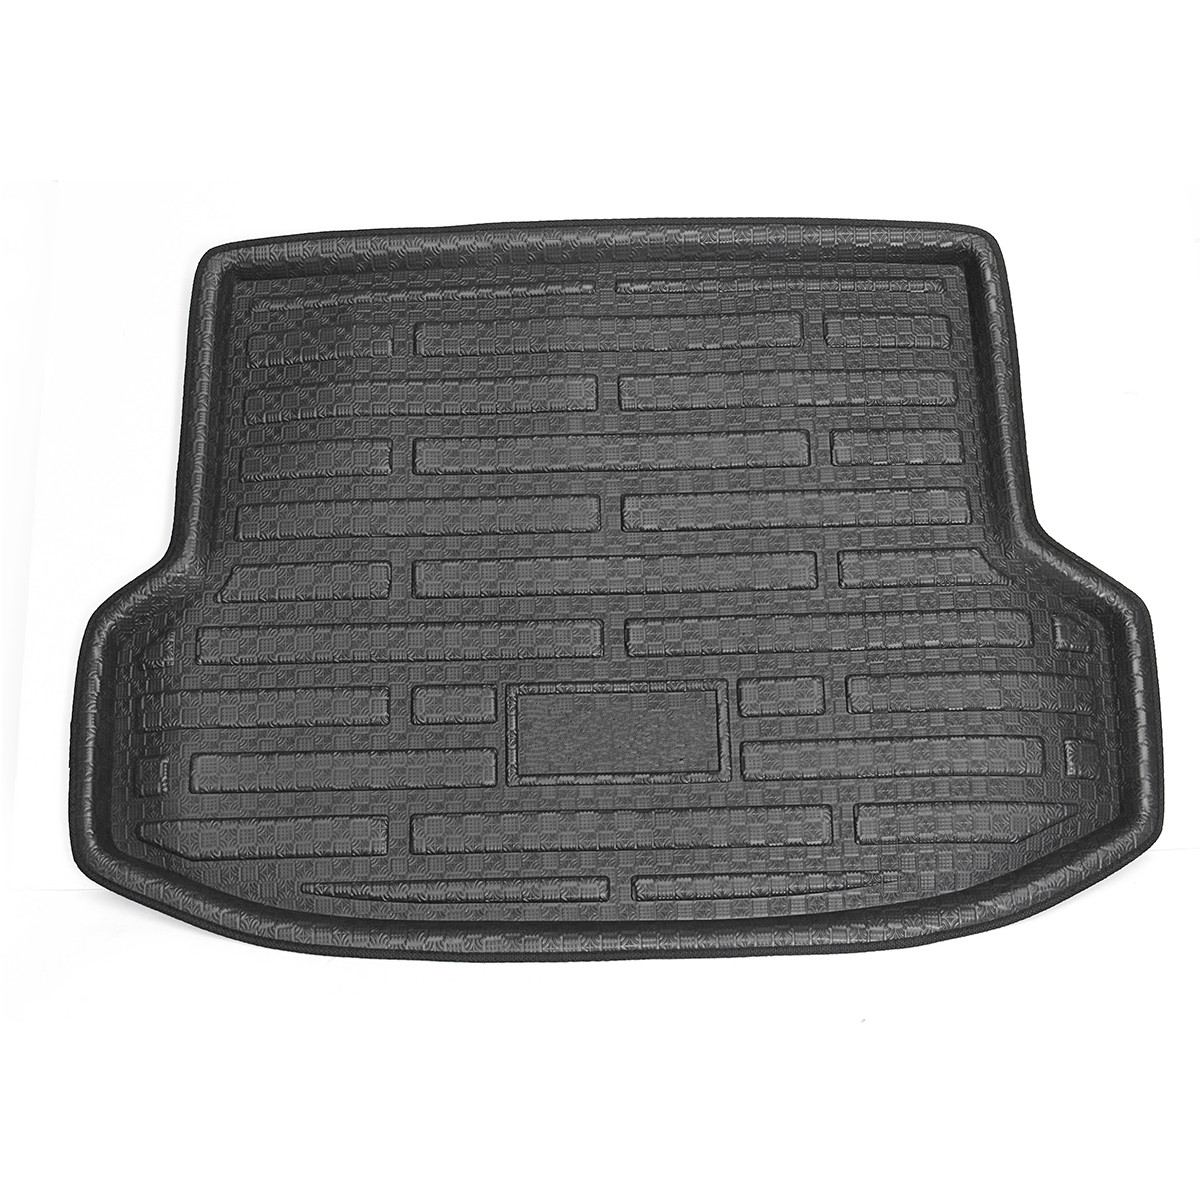 For Hyundai Tucson IX35 2010 2011 2012 2013 2014 2015 Car Rear Boot Liner Trunk Cargo Mat Tray Floor Carpet Mud Pad Protector